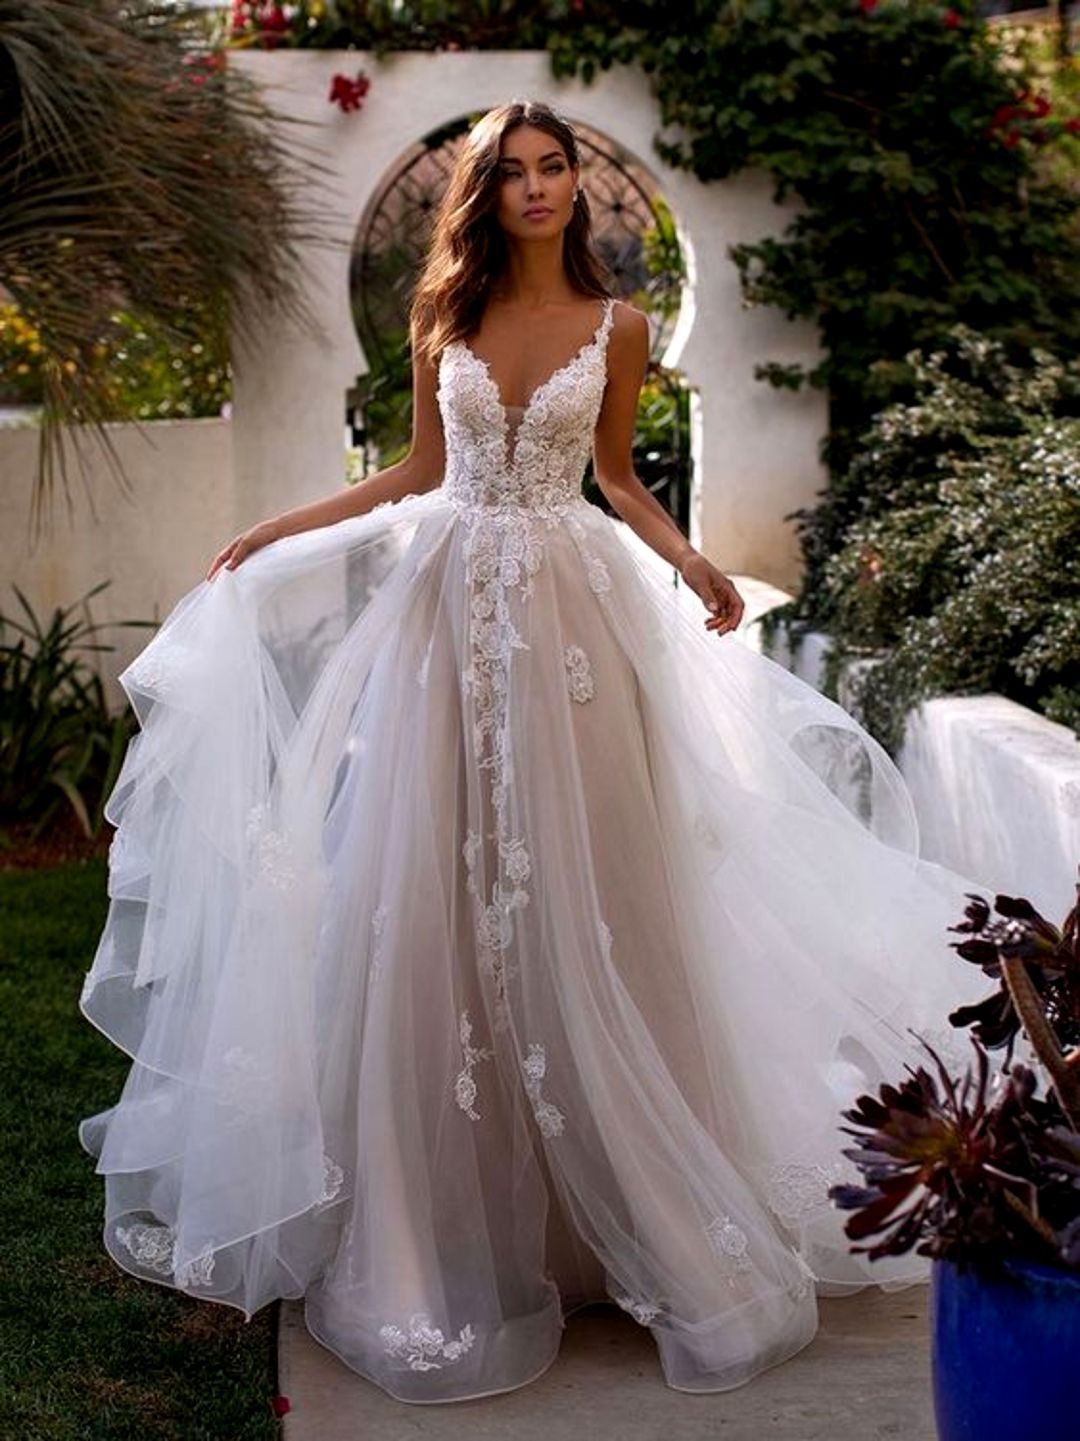 European Style Beautiful Wedding Dress Ideas Long Bridal Gown Tulle Wedding Gown A Line Wedding Dress